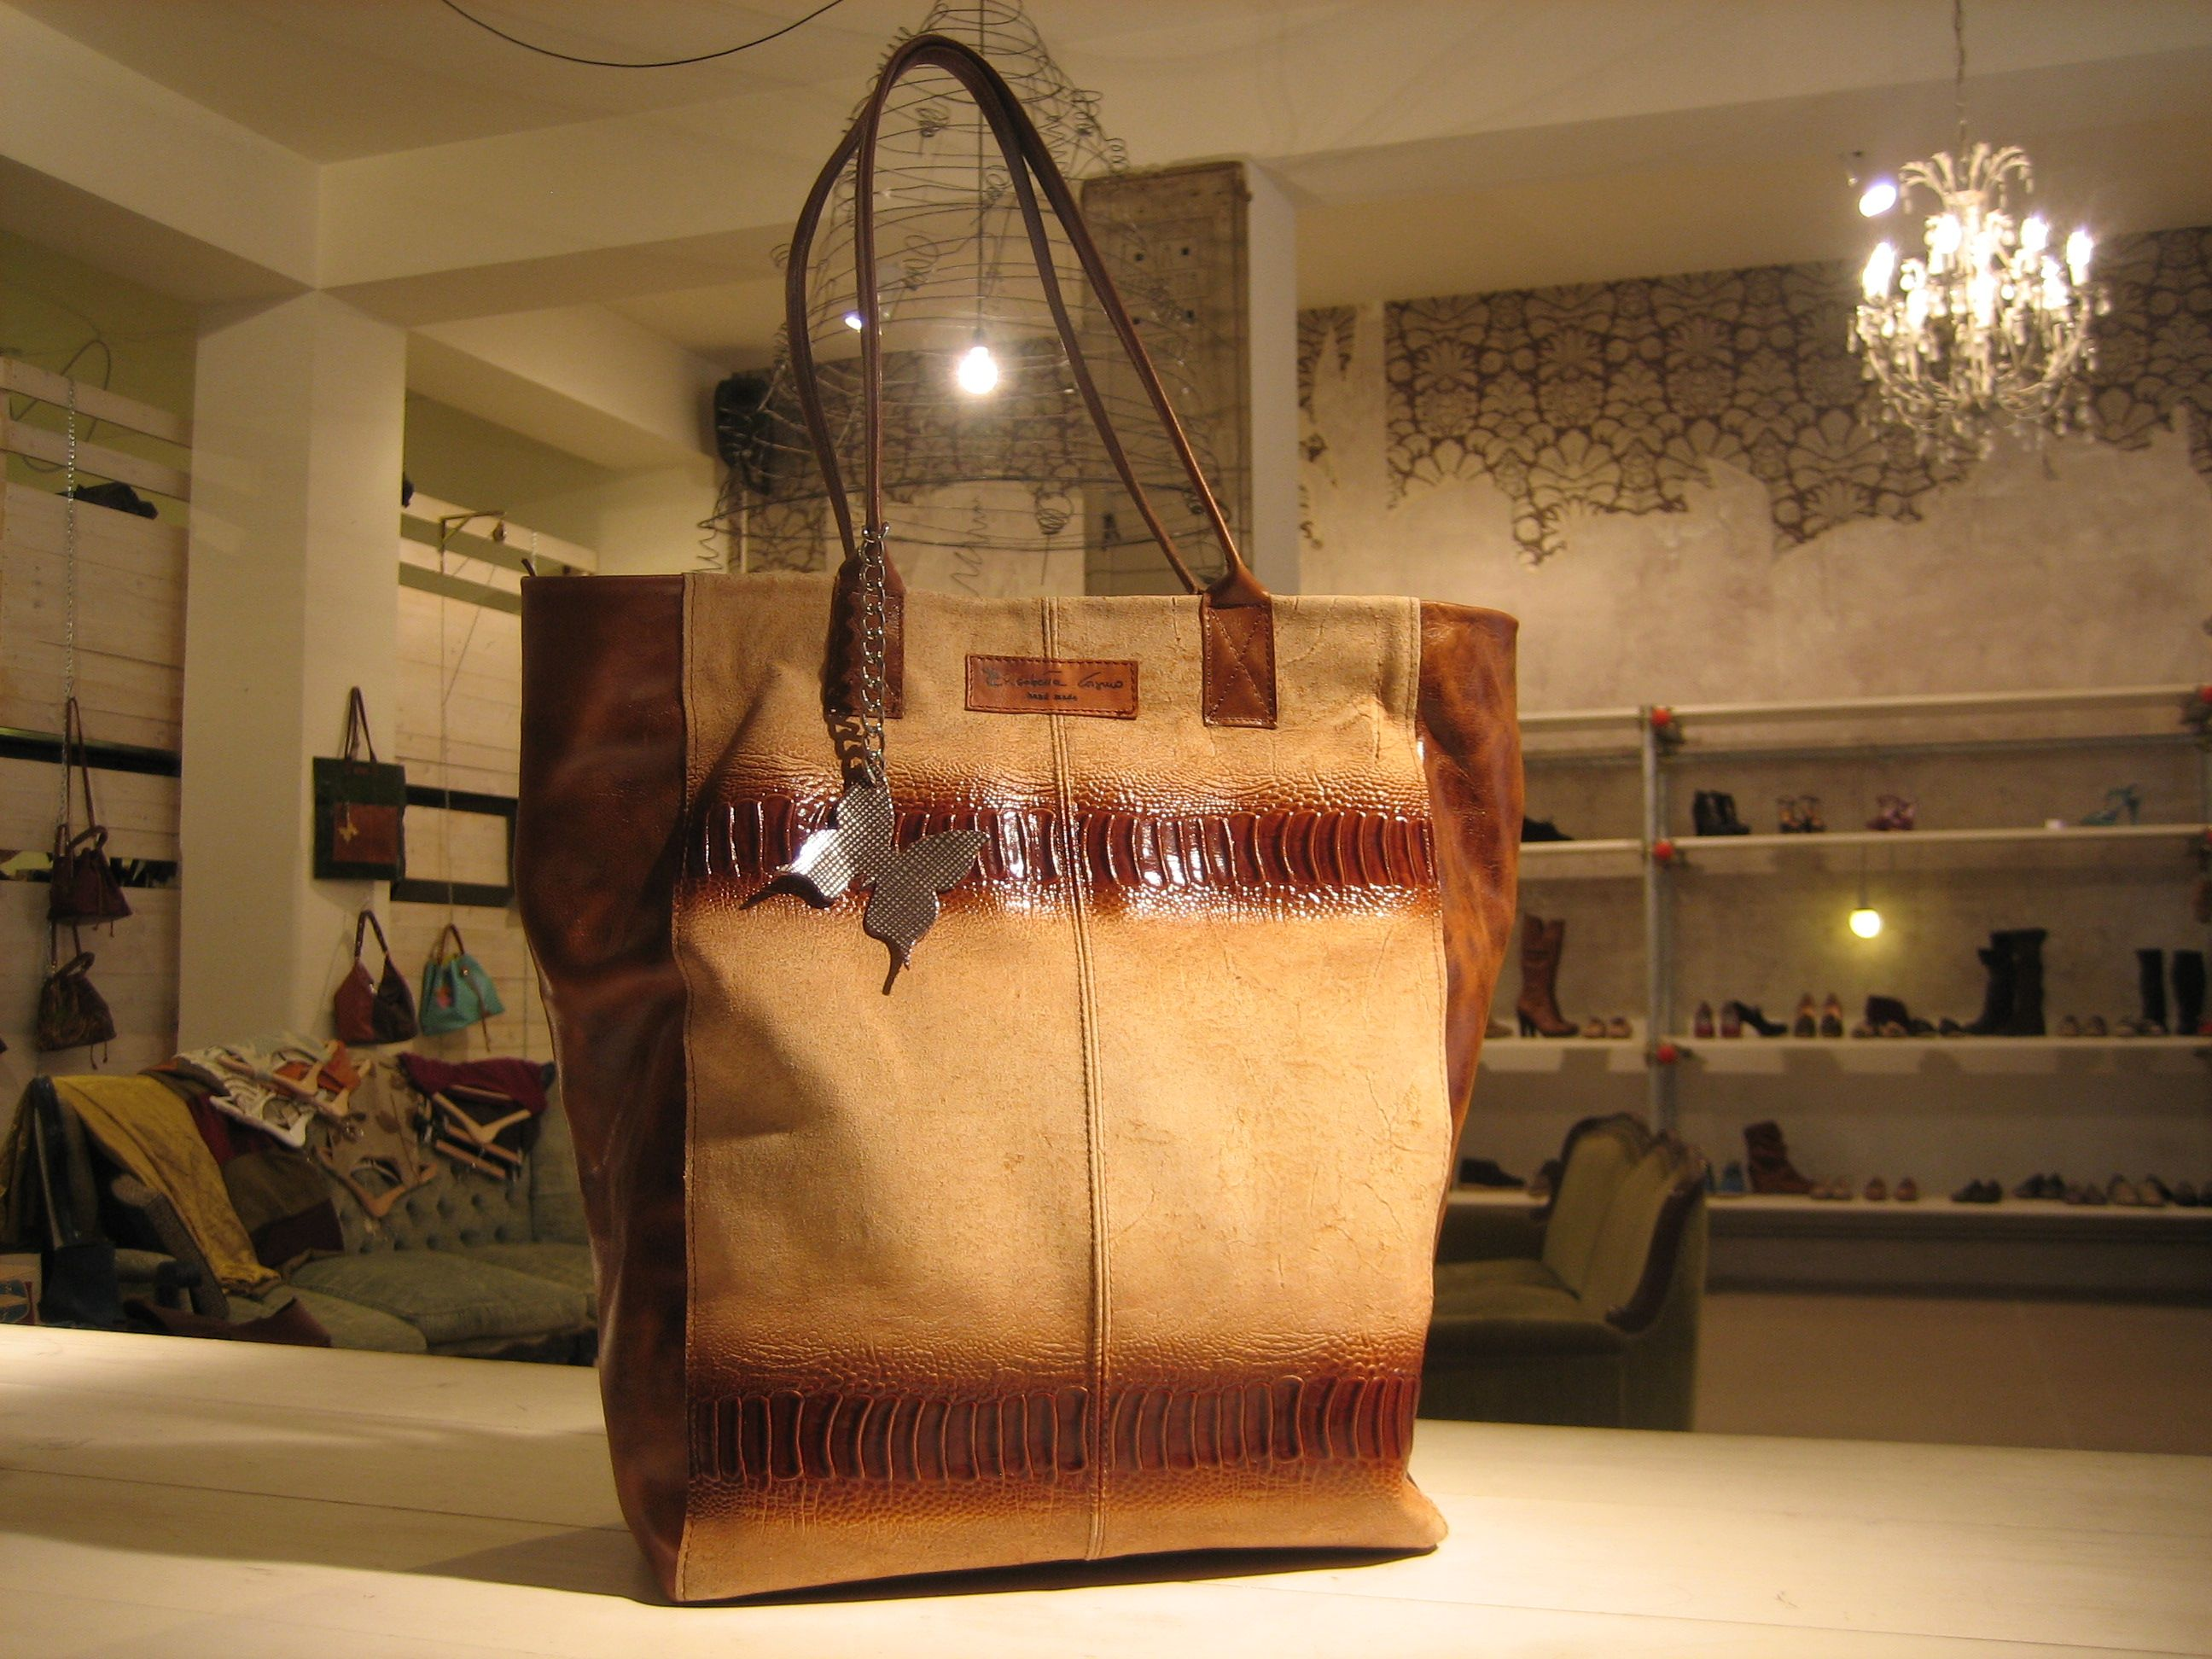 Pavoncella Bag - Buy online at http://www.elisabettacosmo.it